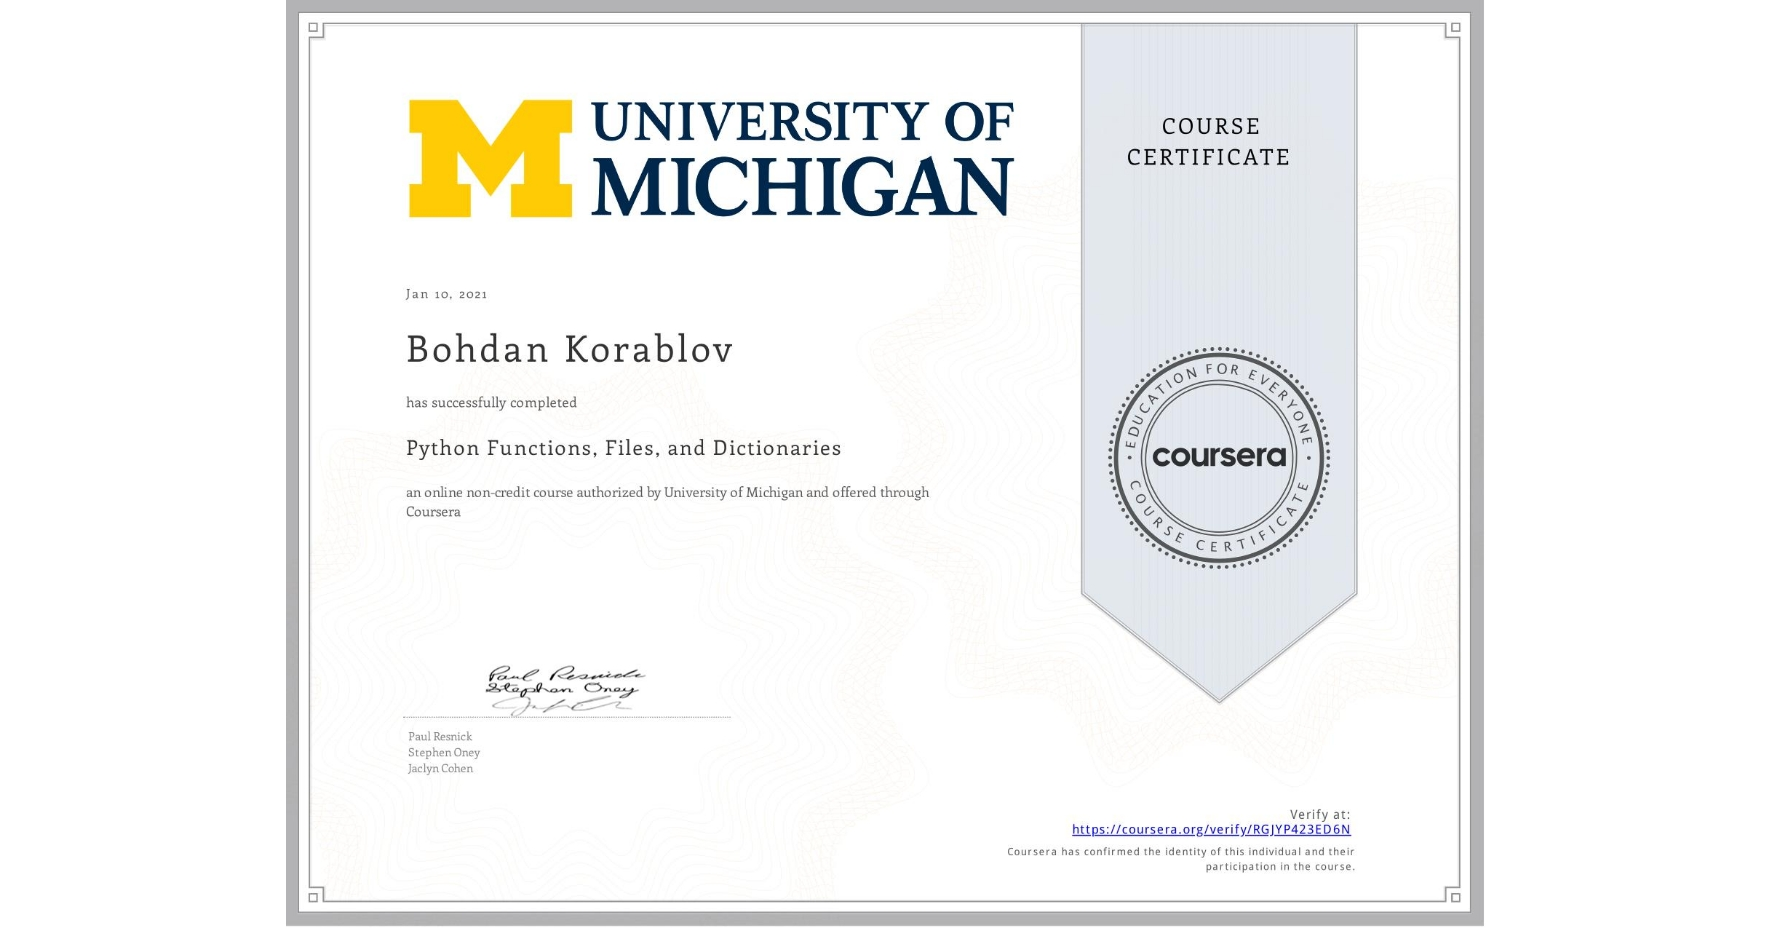 View certificate for Bohdan Korablov, Python Functions, Files, and Dictionaries, an online non-credit course authorized by University of Michigan and offered through Coursera